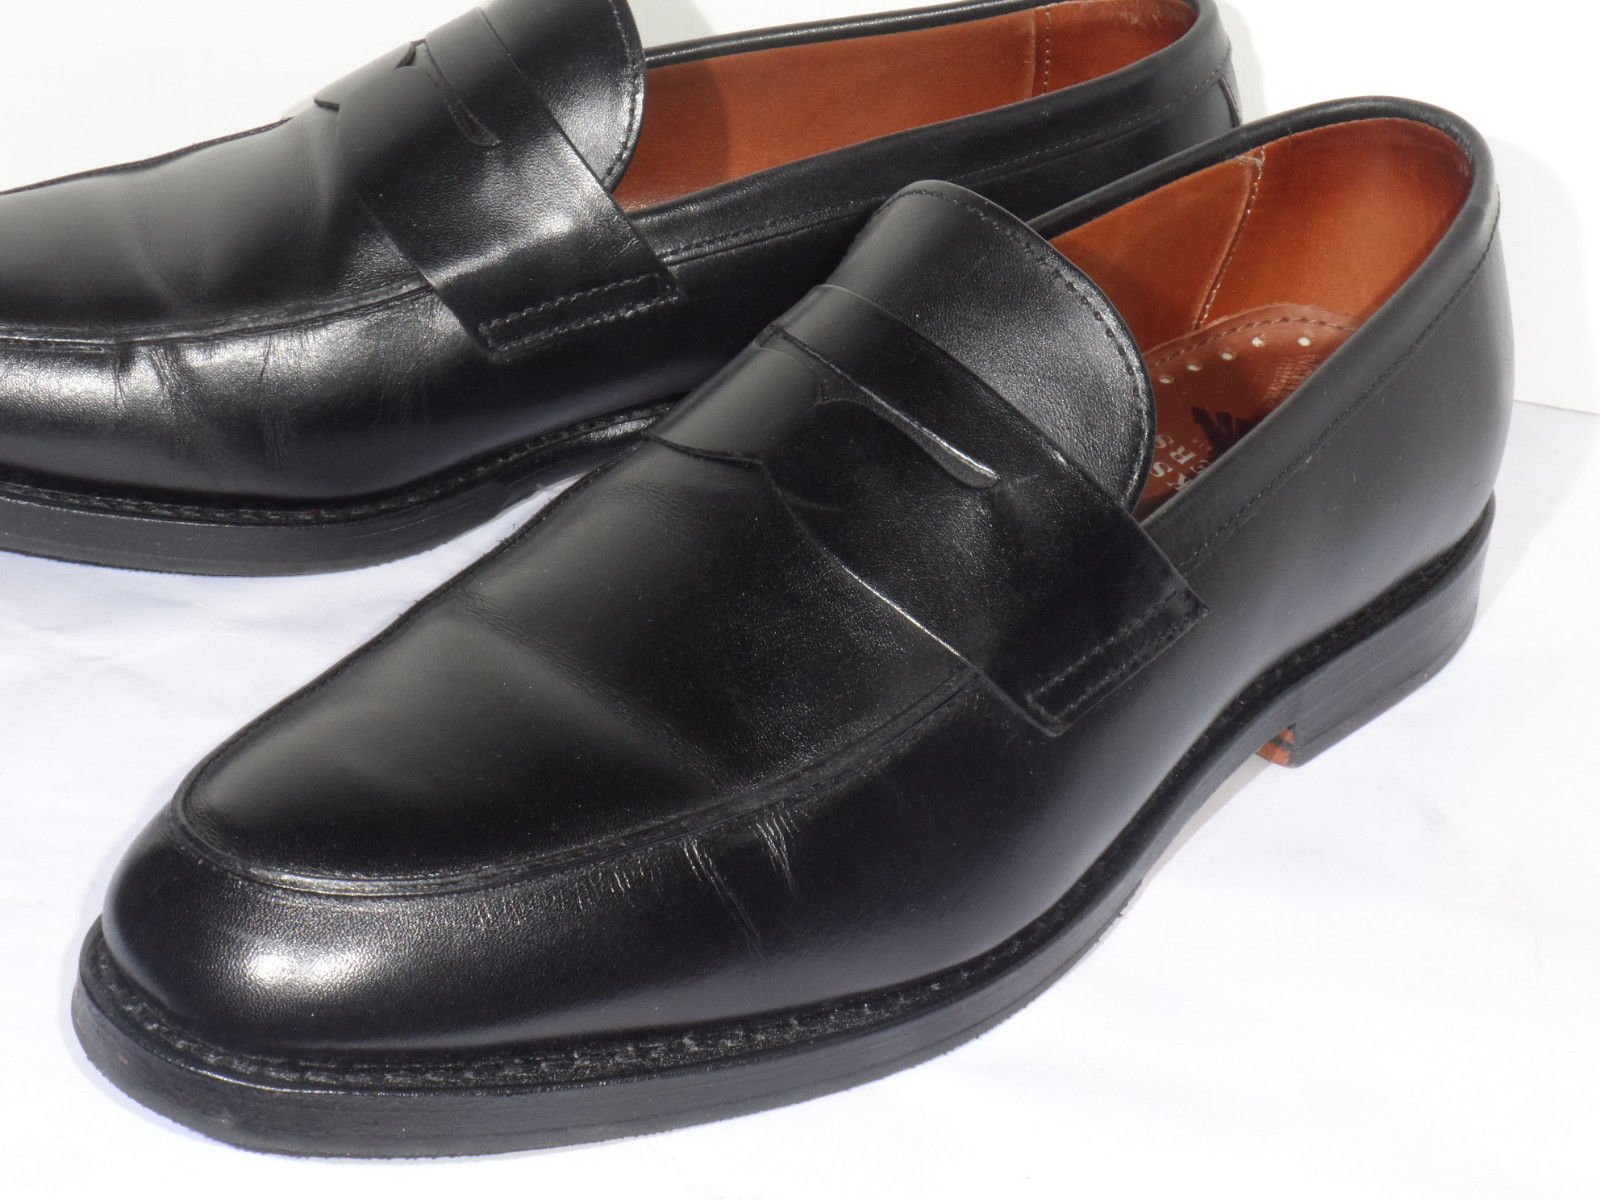 bd6d8aacd06 Men s Brooks Brothers Black Calfskin Leather Penny Loafers